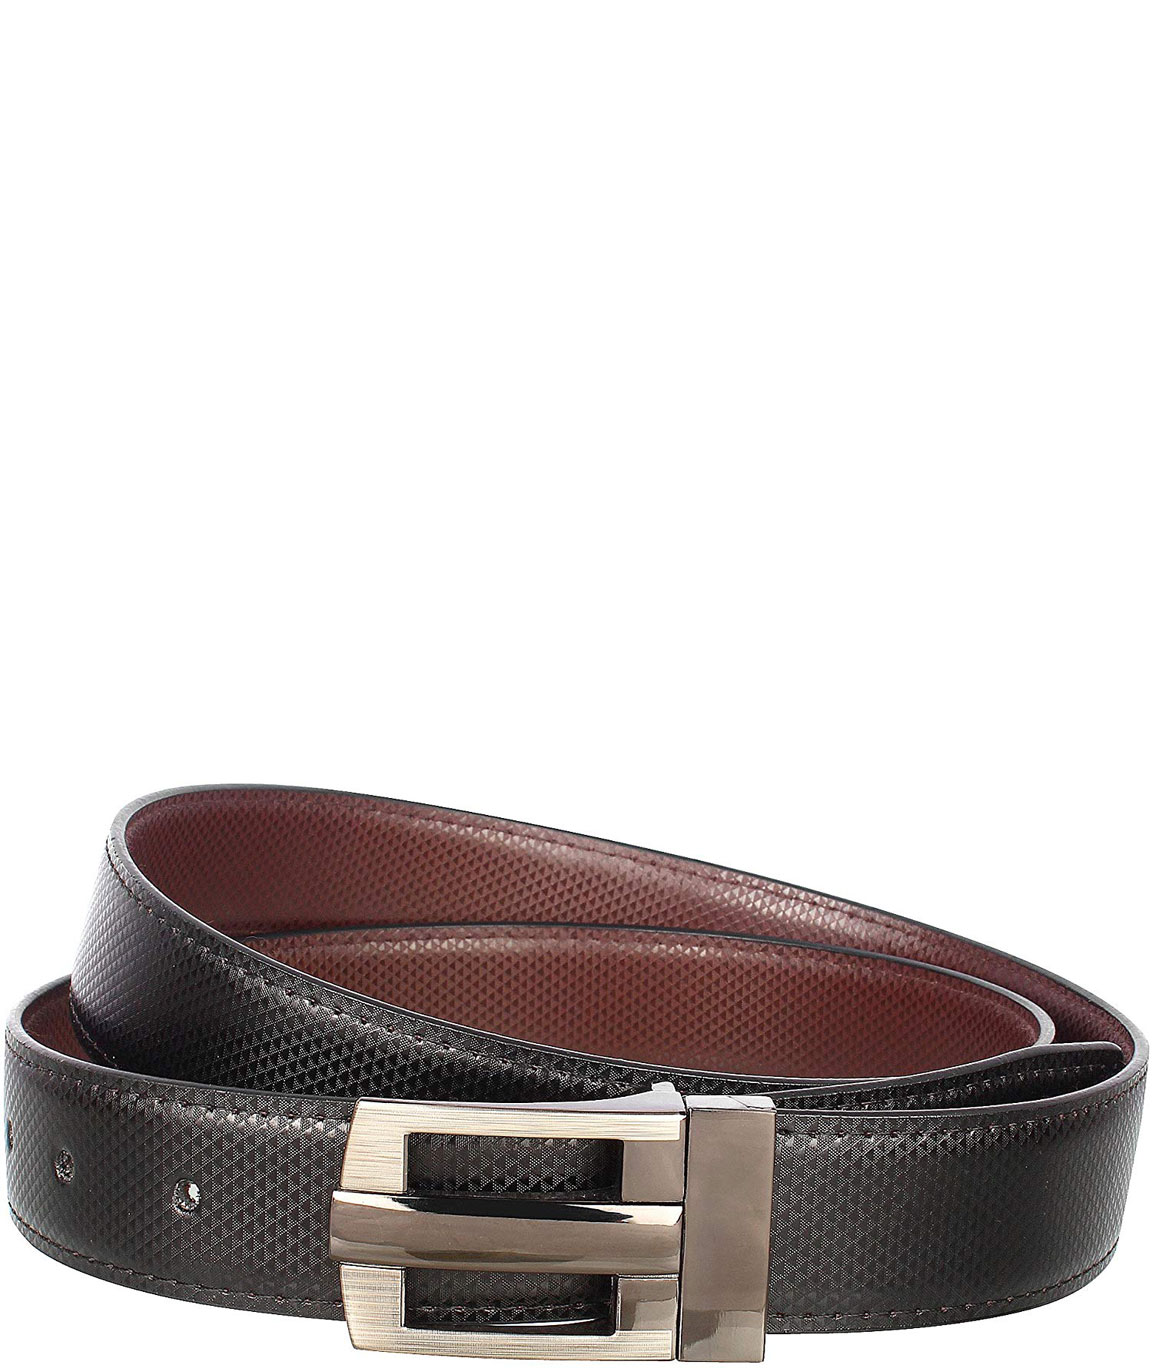 Alfami Mens PU Leather Belt Hook Buckle Free size upto 42 inch waist (Pack of 1)